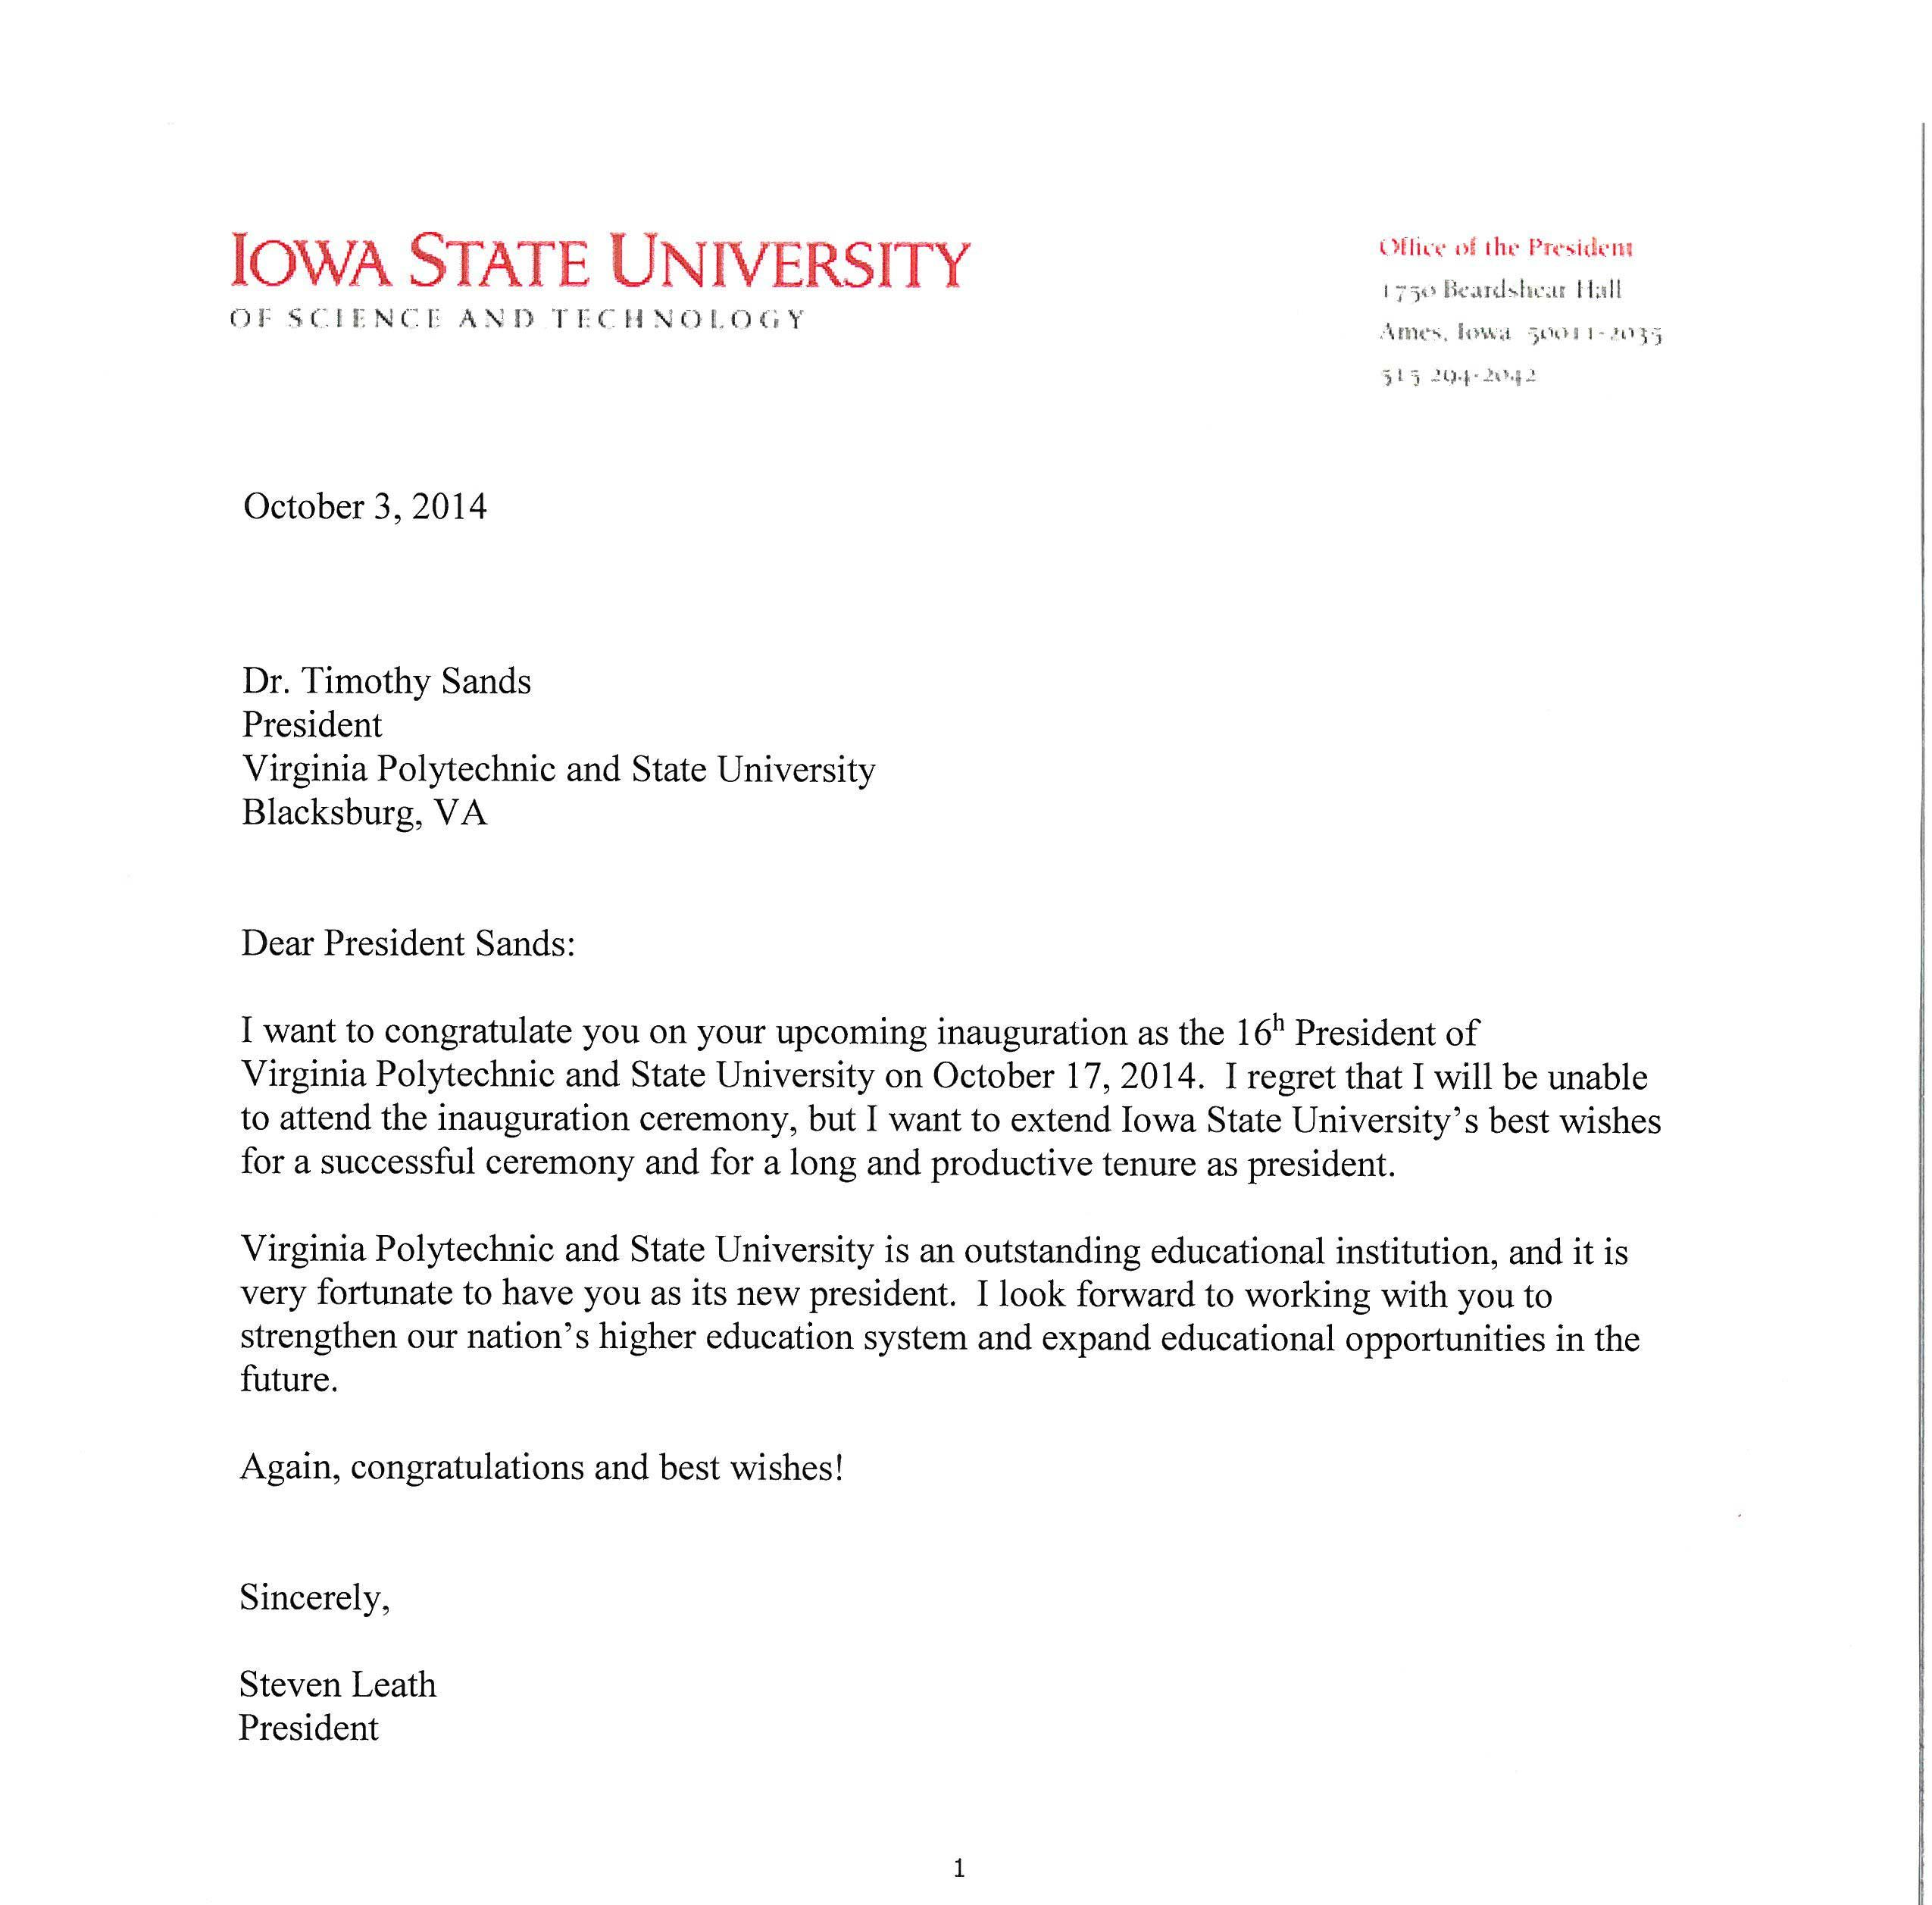 Police Chief Cover Letter Letter From Steven Leath President Of Iowa State University